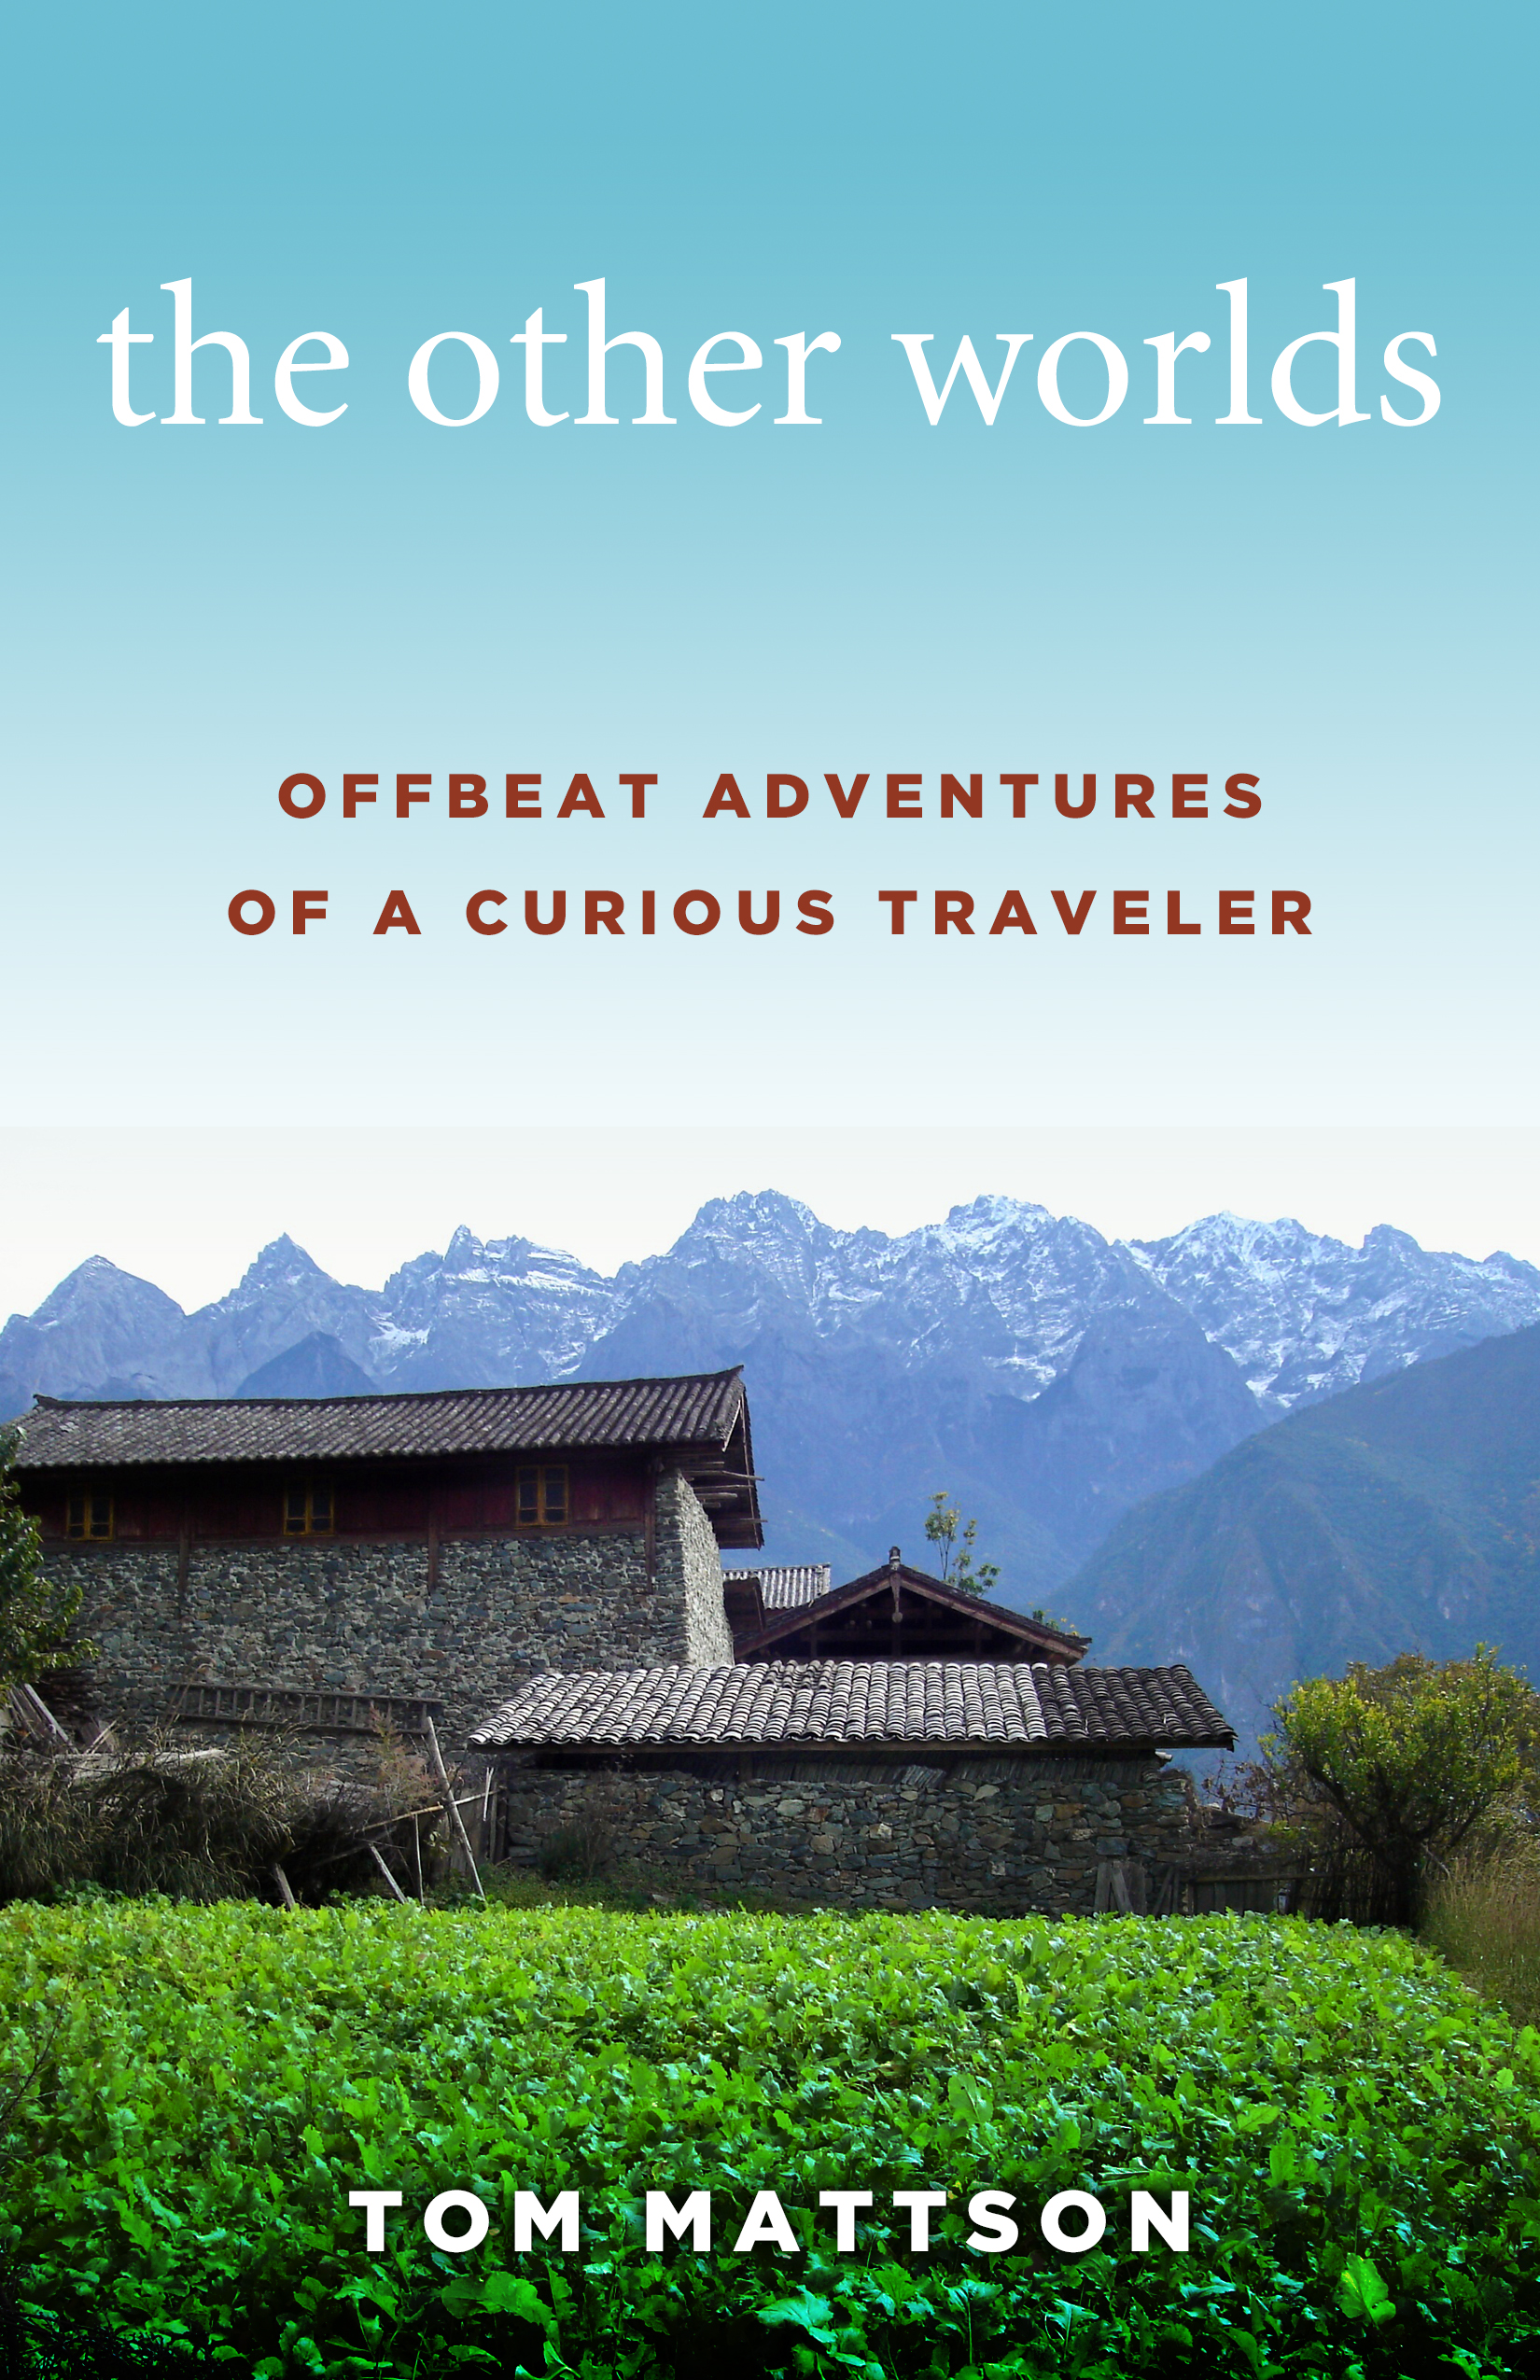 The Other Worlds: Offbeat Adventures of a Curious Traveler